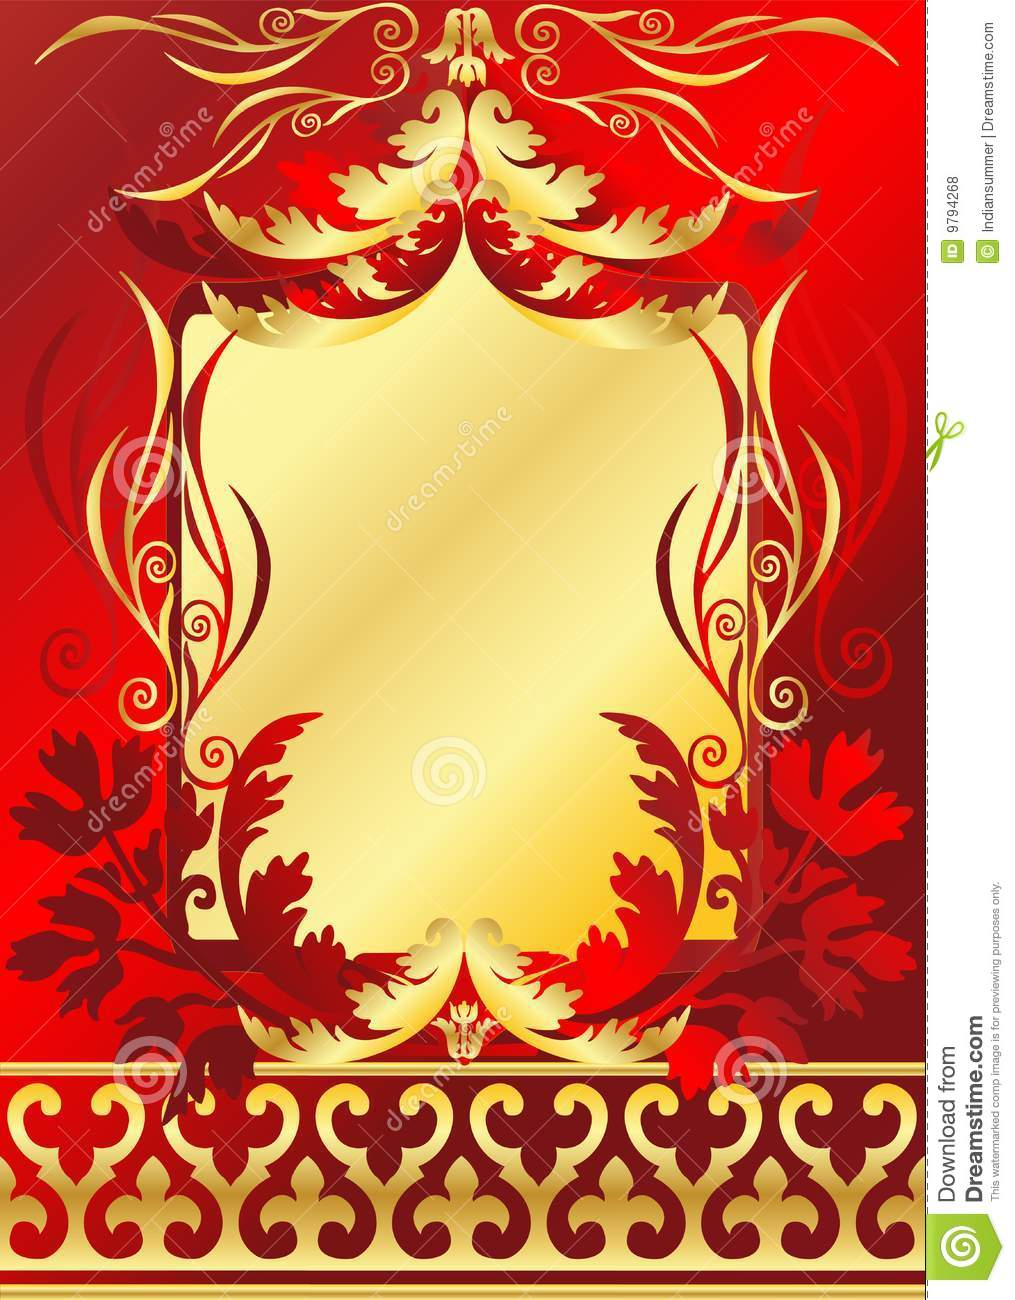 Red And Gold Frame Stock Vector Image Of Botany. Small Cabin Kitchen Designs. Kitchen Cabinet Designs. Interior Designing Kitchen. Italian Kitchen Interior Design. Custom Kitchen Design Software. Ikea Kitchen Cabinets Design. Small Restaurant Kitchen Design. 10 X 20 Kitchen Design